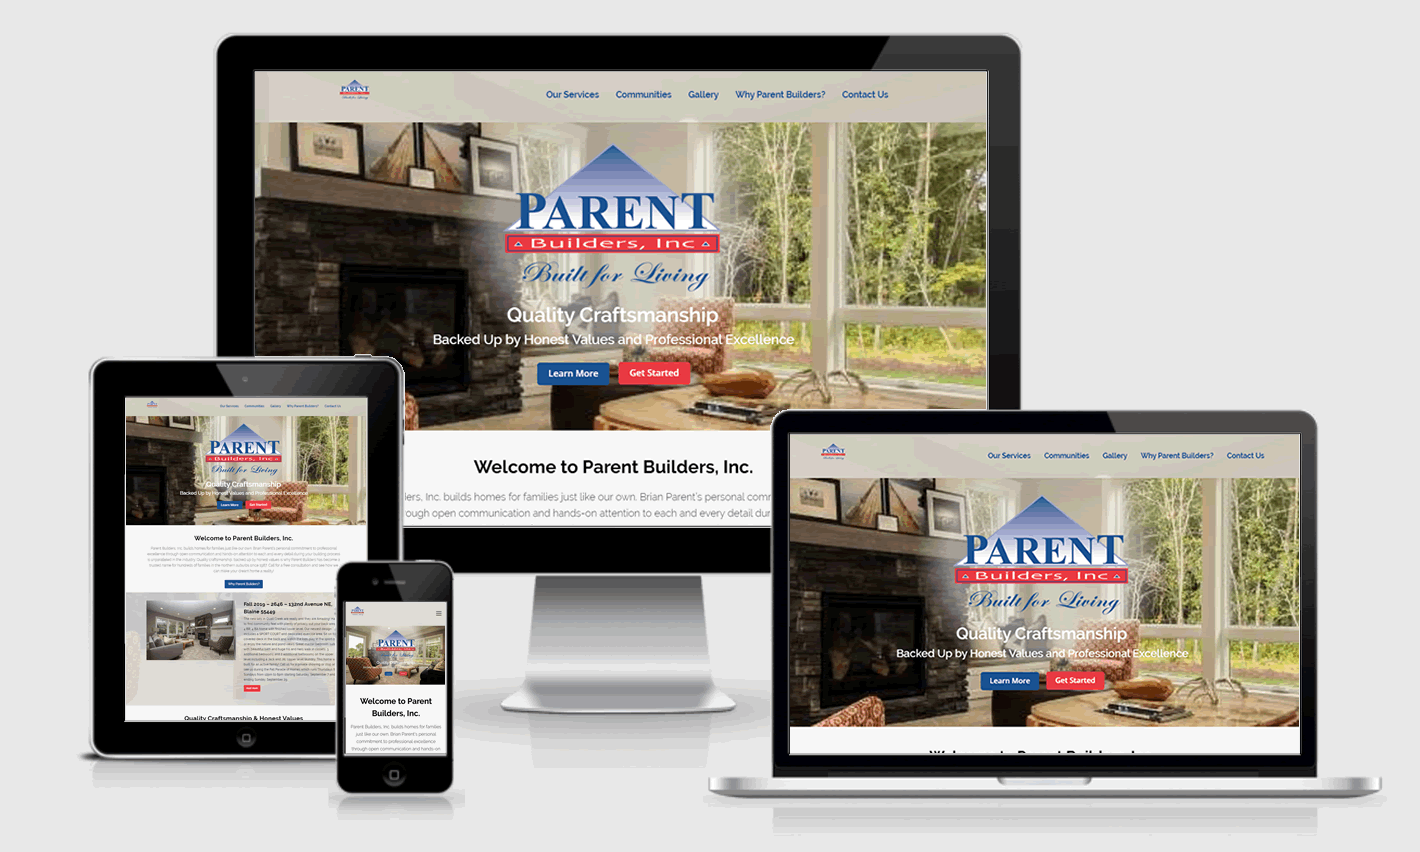 Parent Builders, Inc.